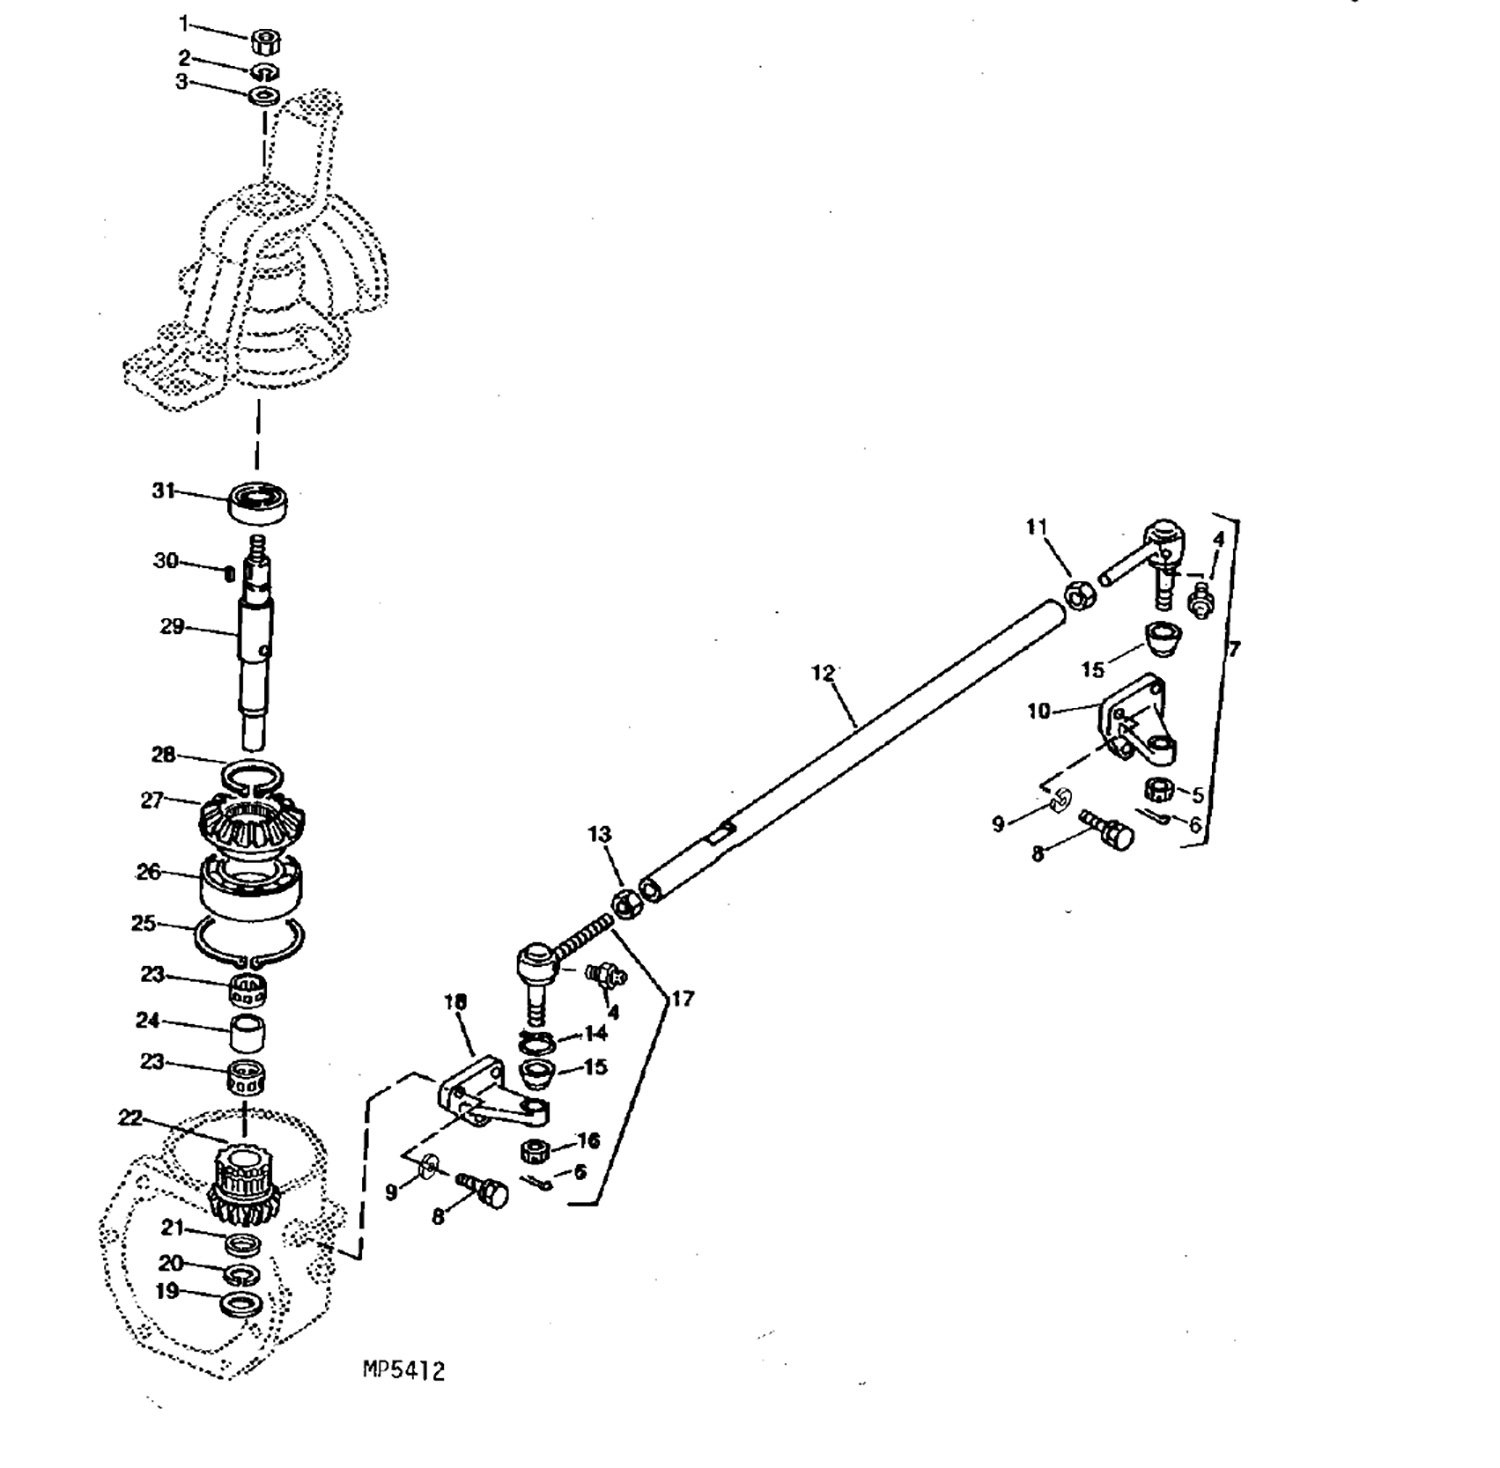 John Deere 955 Parts Diagram, John, Get Free Image About